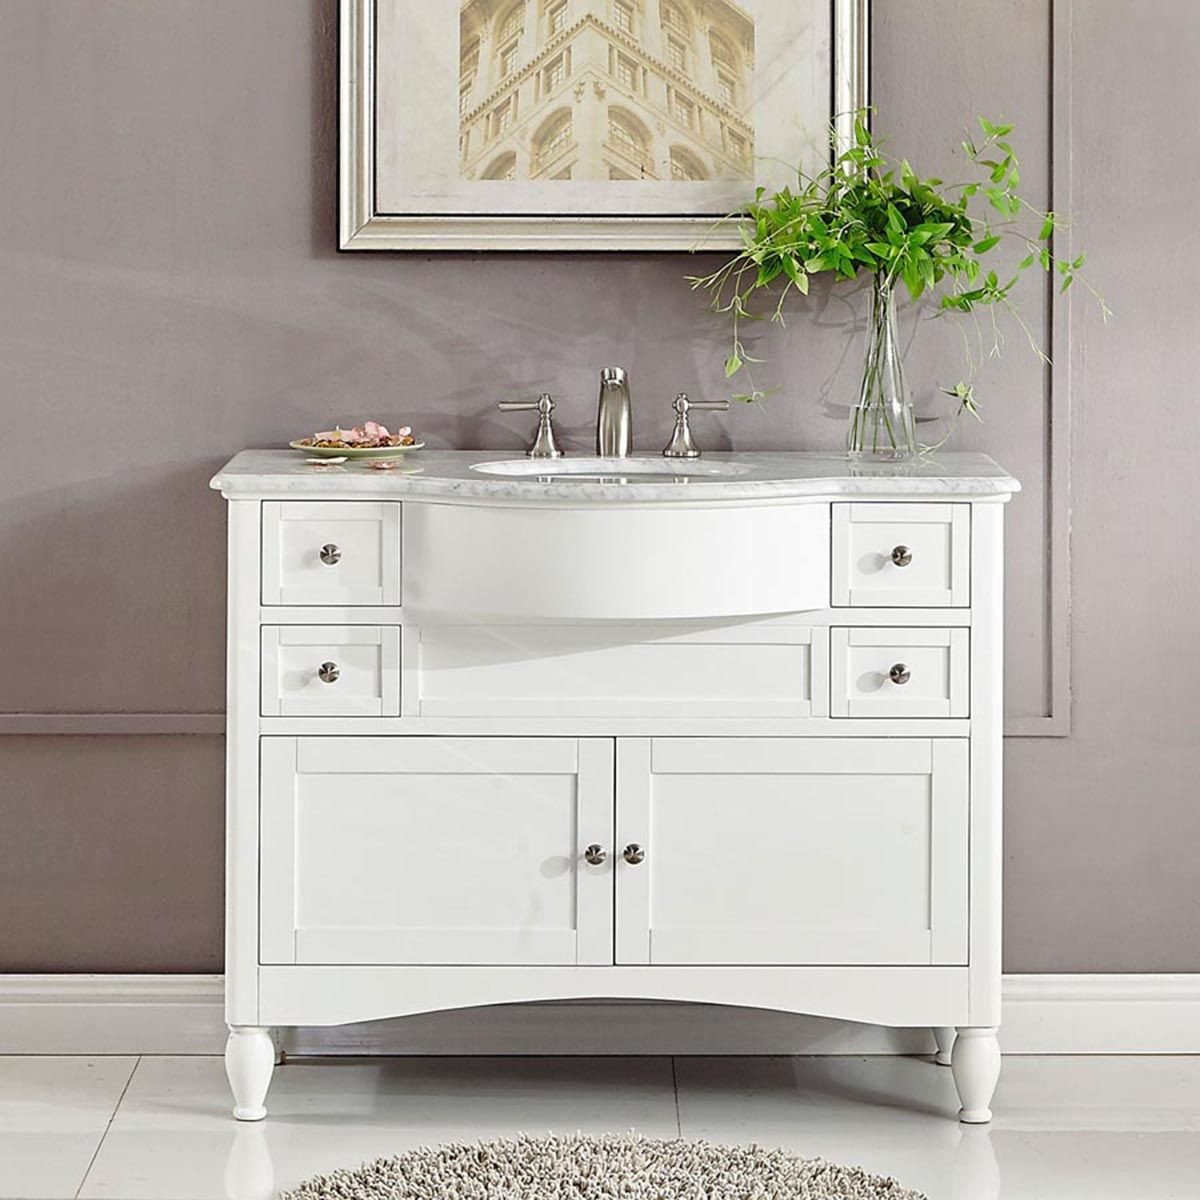 "Dresser Bathroom Vanity  45"" Modern Single Bathroom Vanity White"